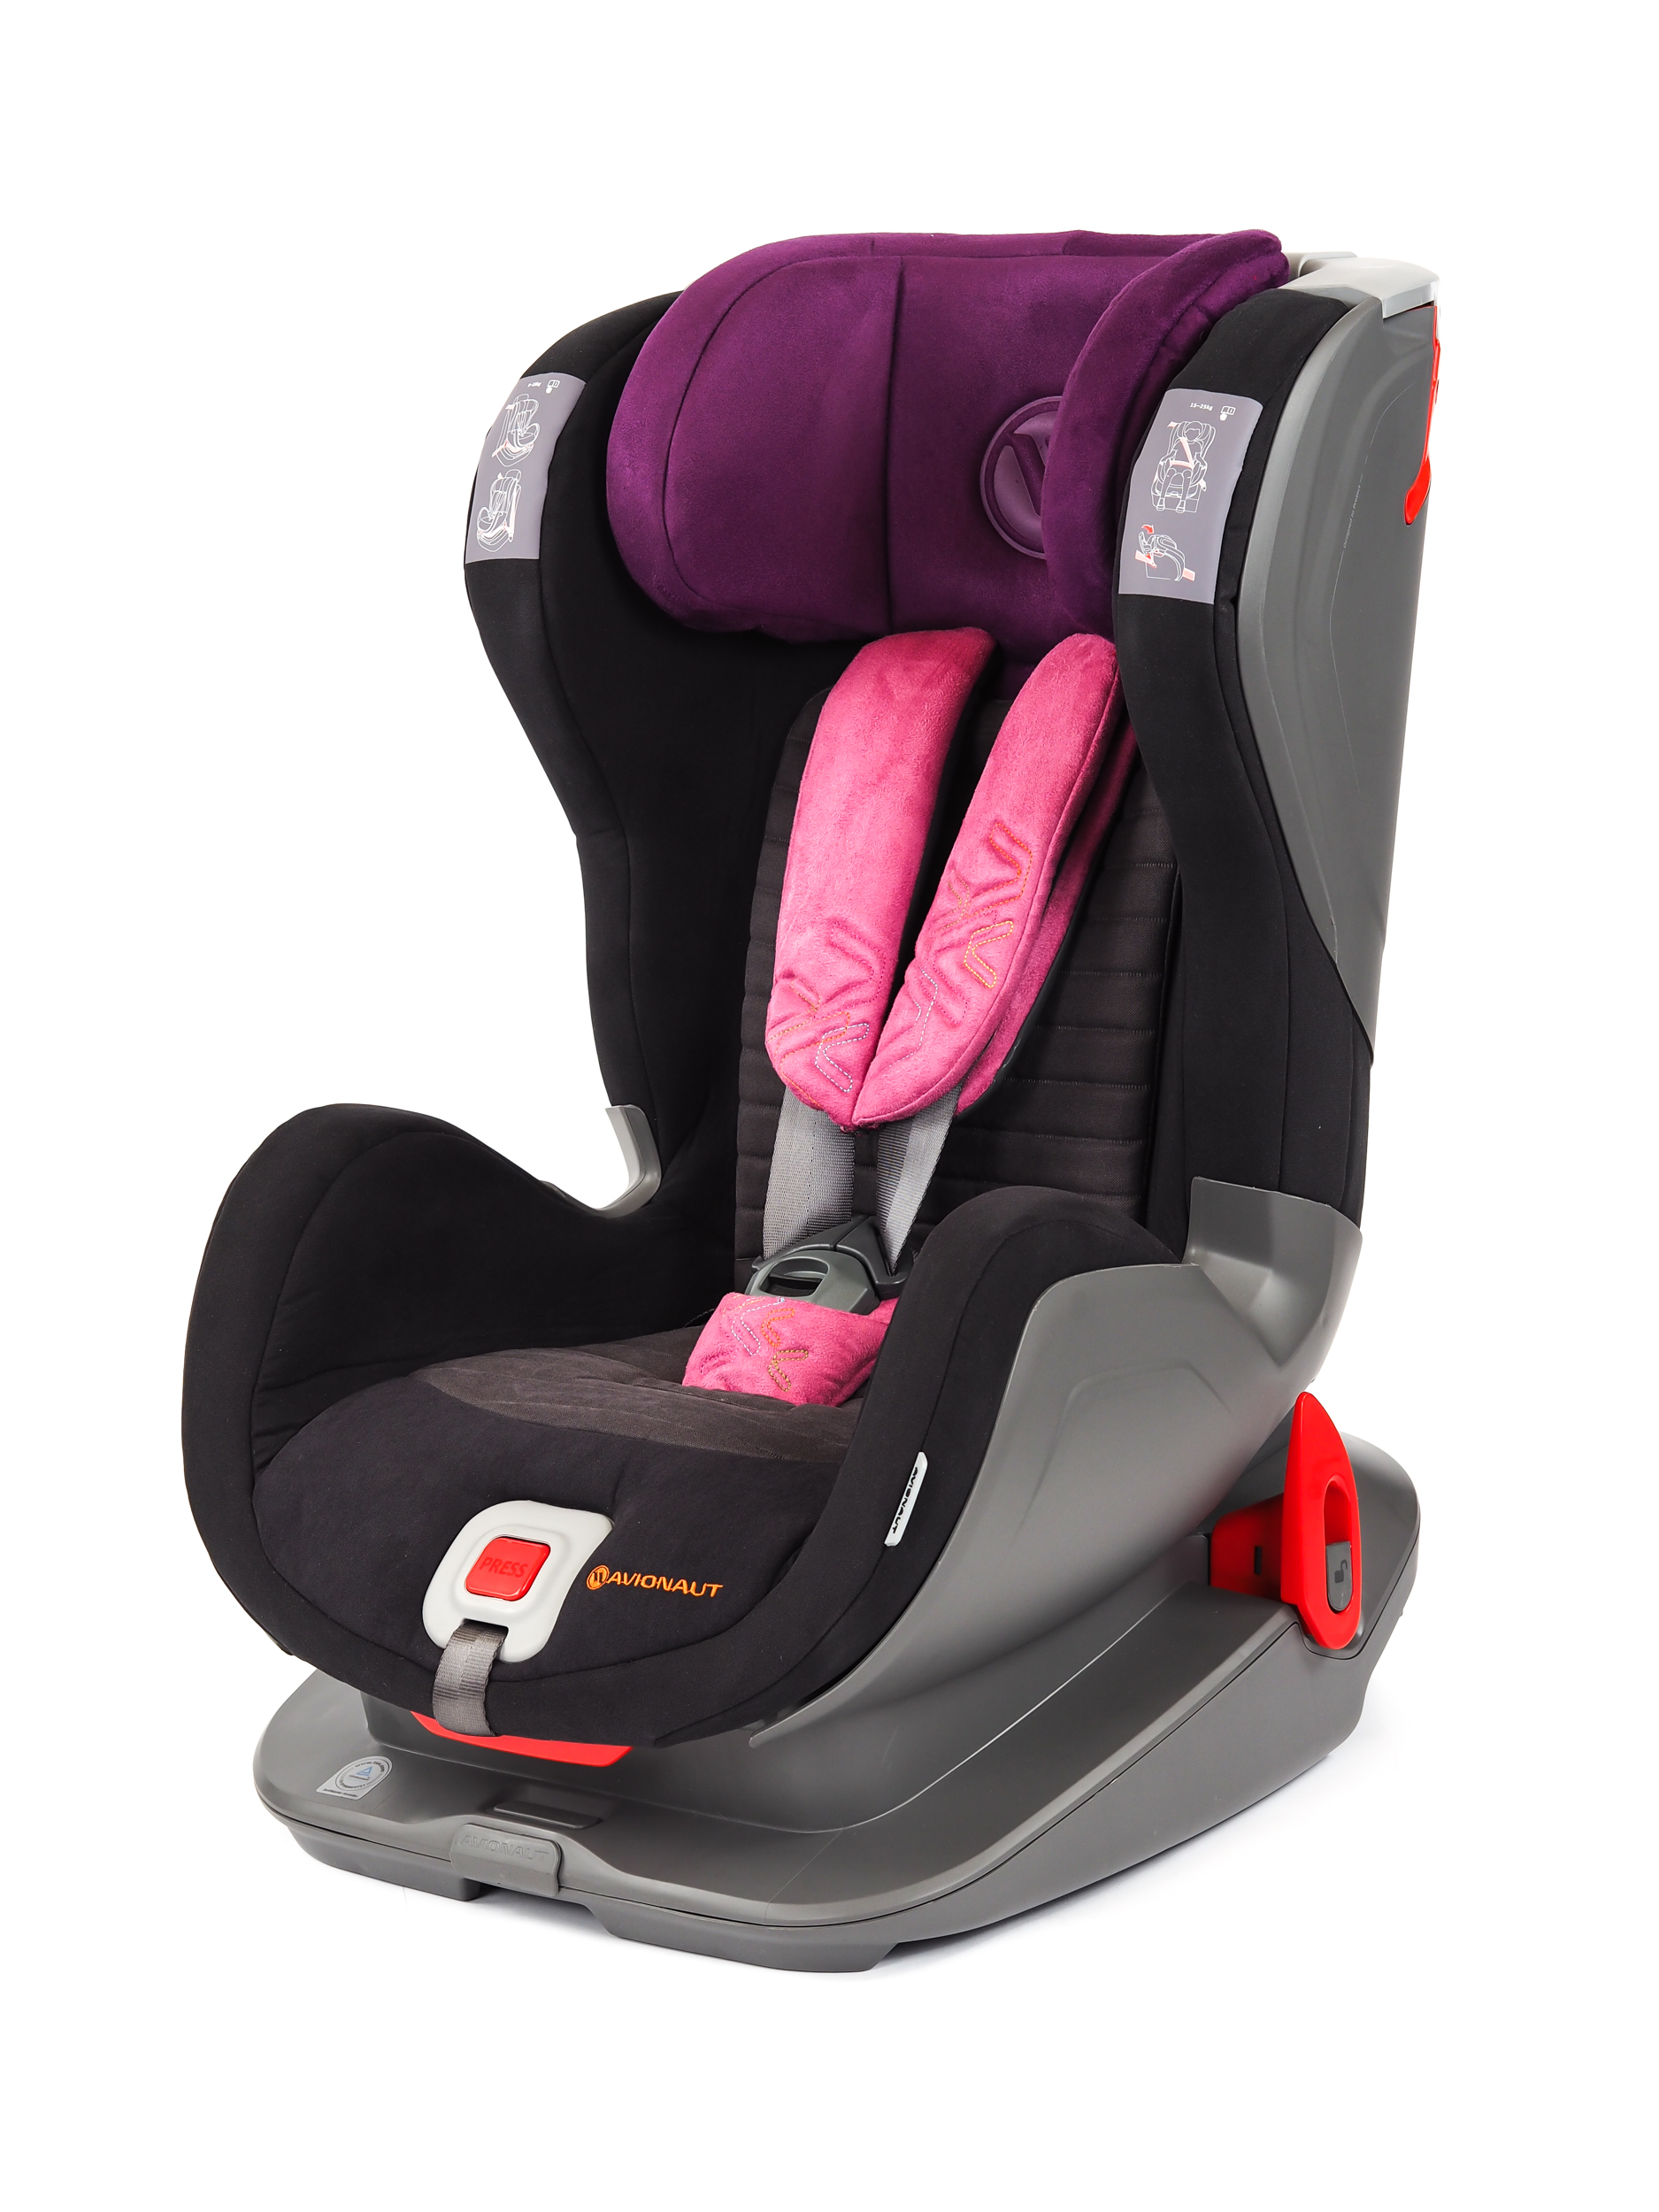 Avionaut Glider Softy[Black/purple AV-340-F.03]